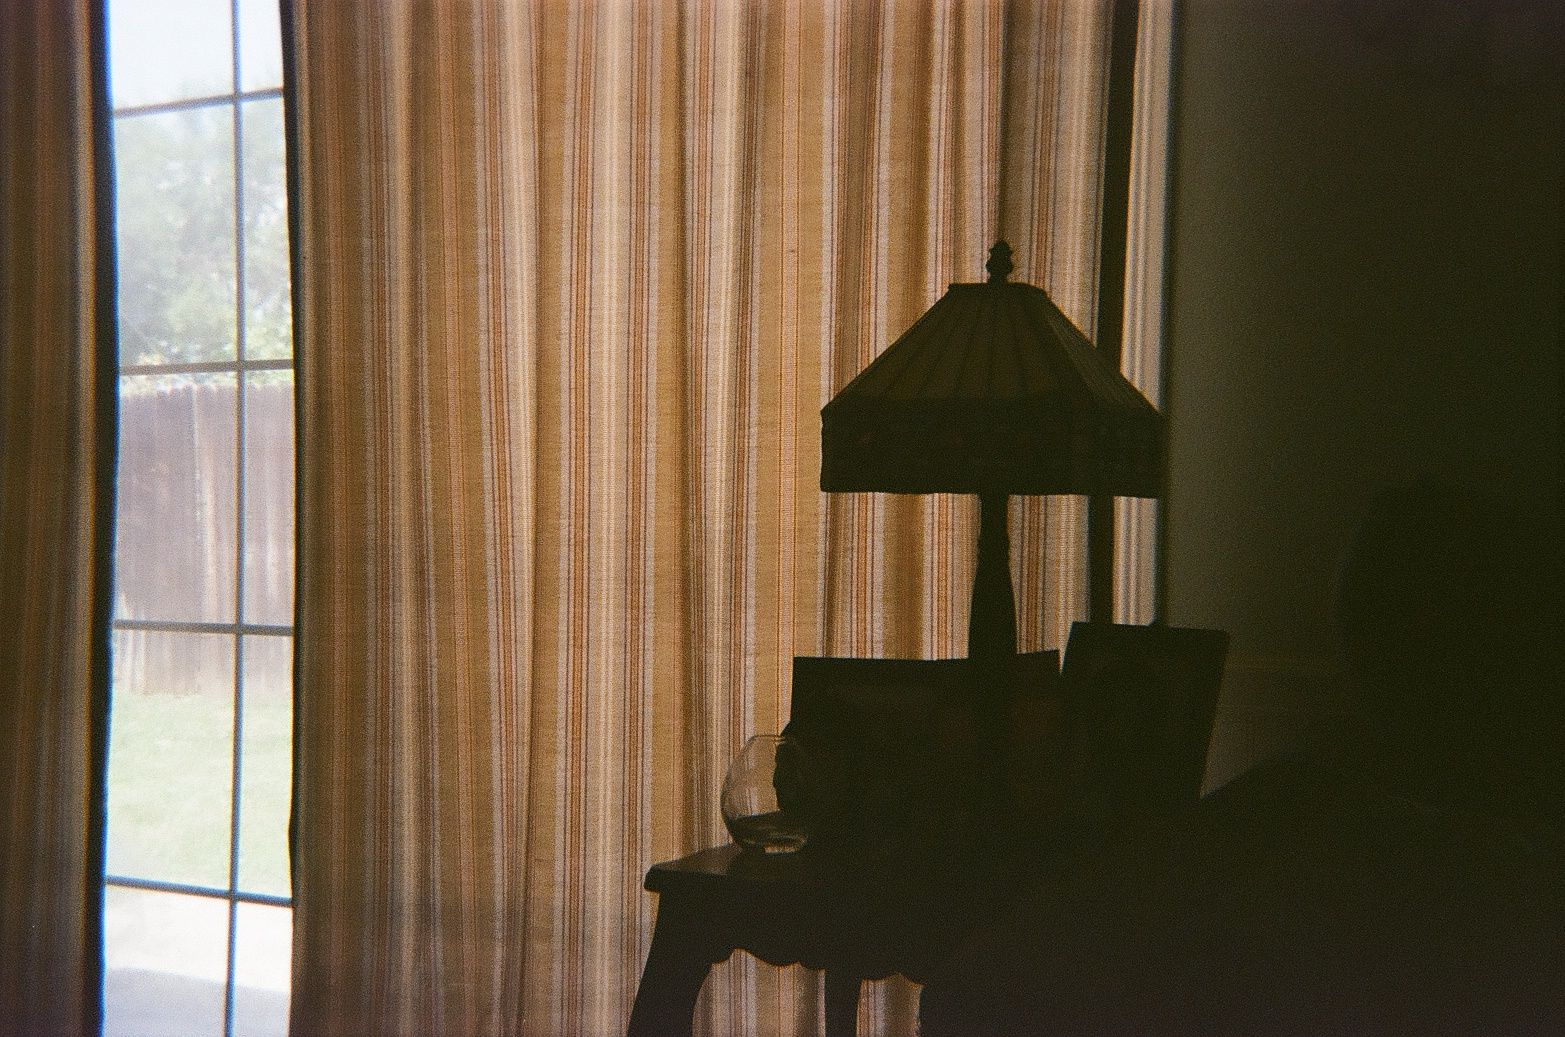 lamp at window